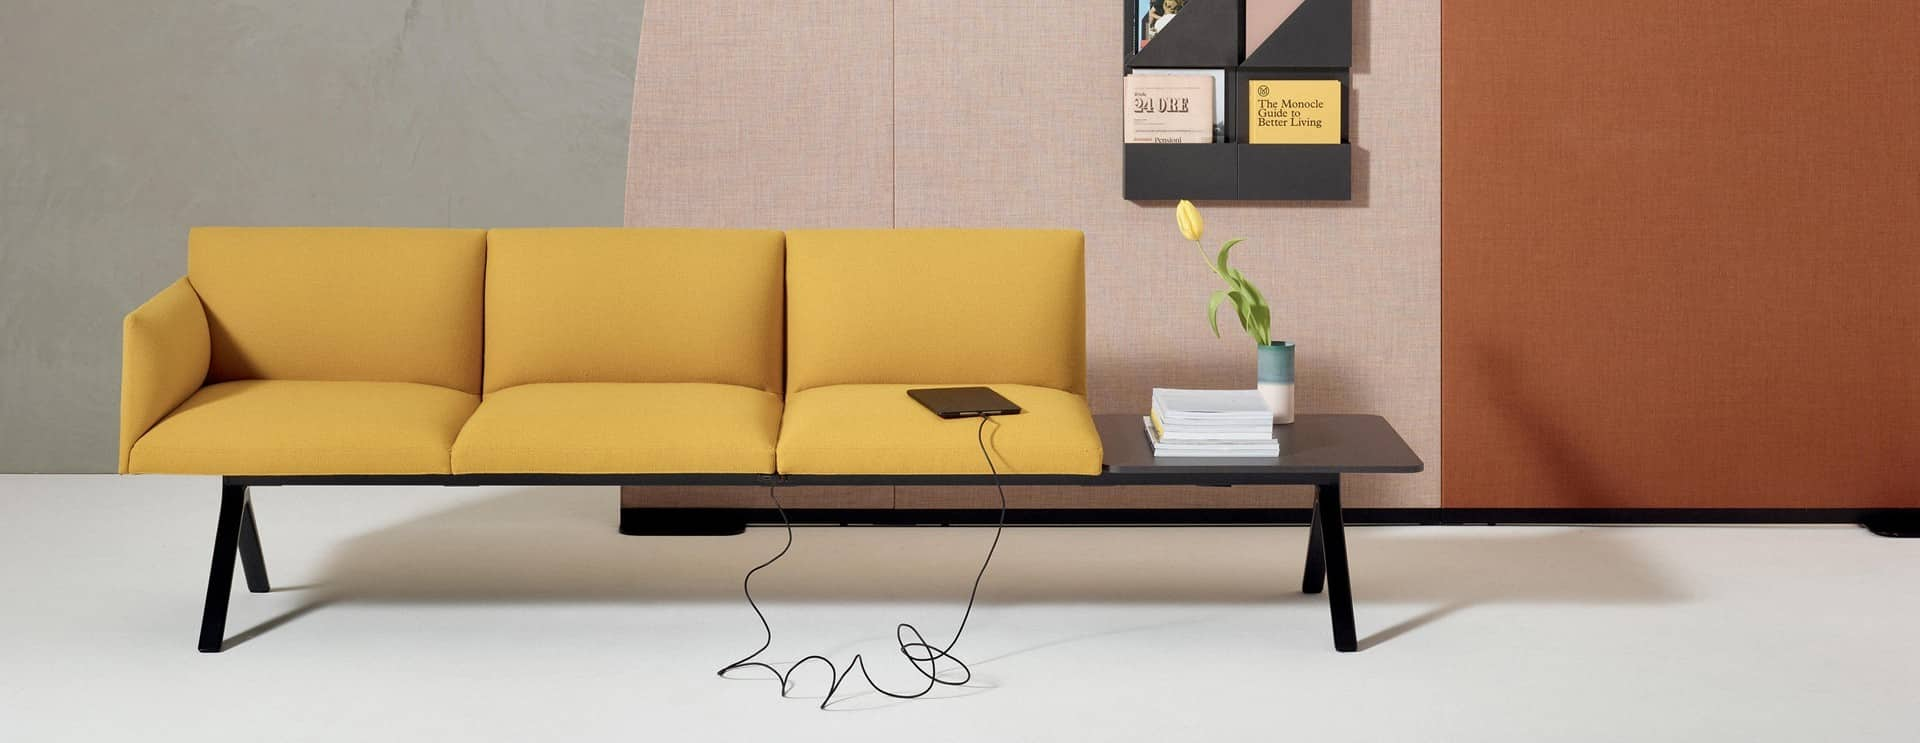 Interior Design: Professional Consultation from Cavallini1920. Yellow living room soft chairs